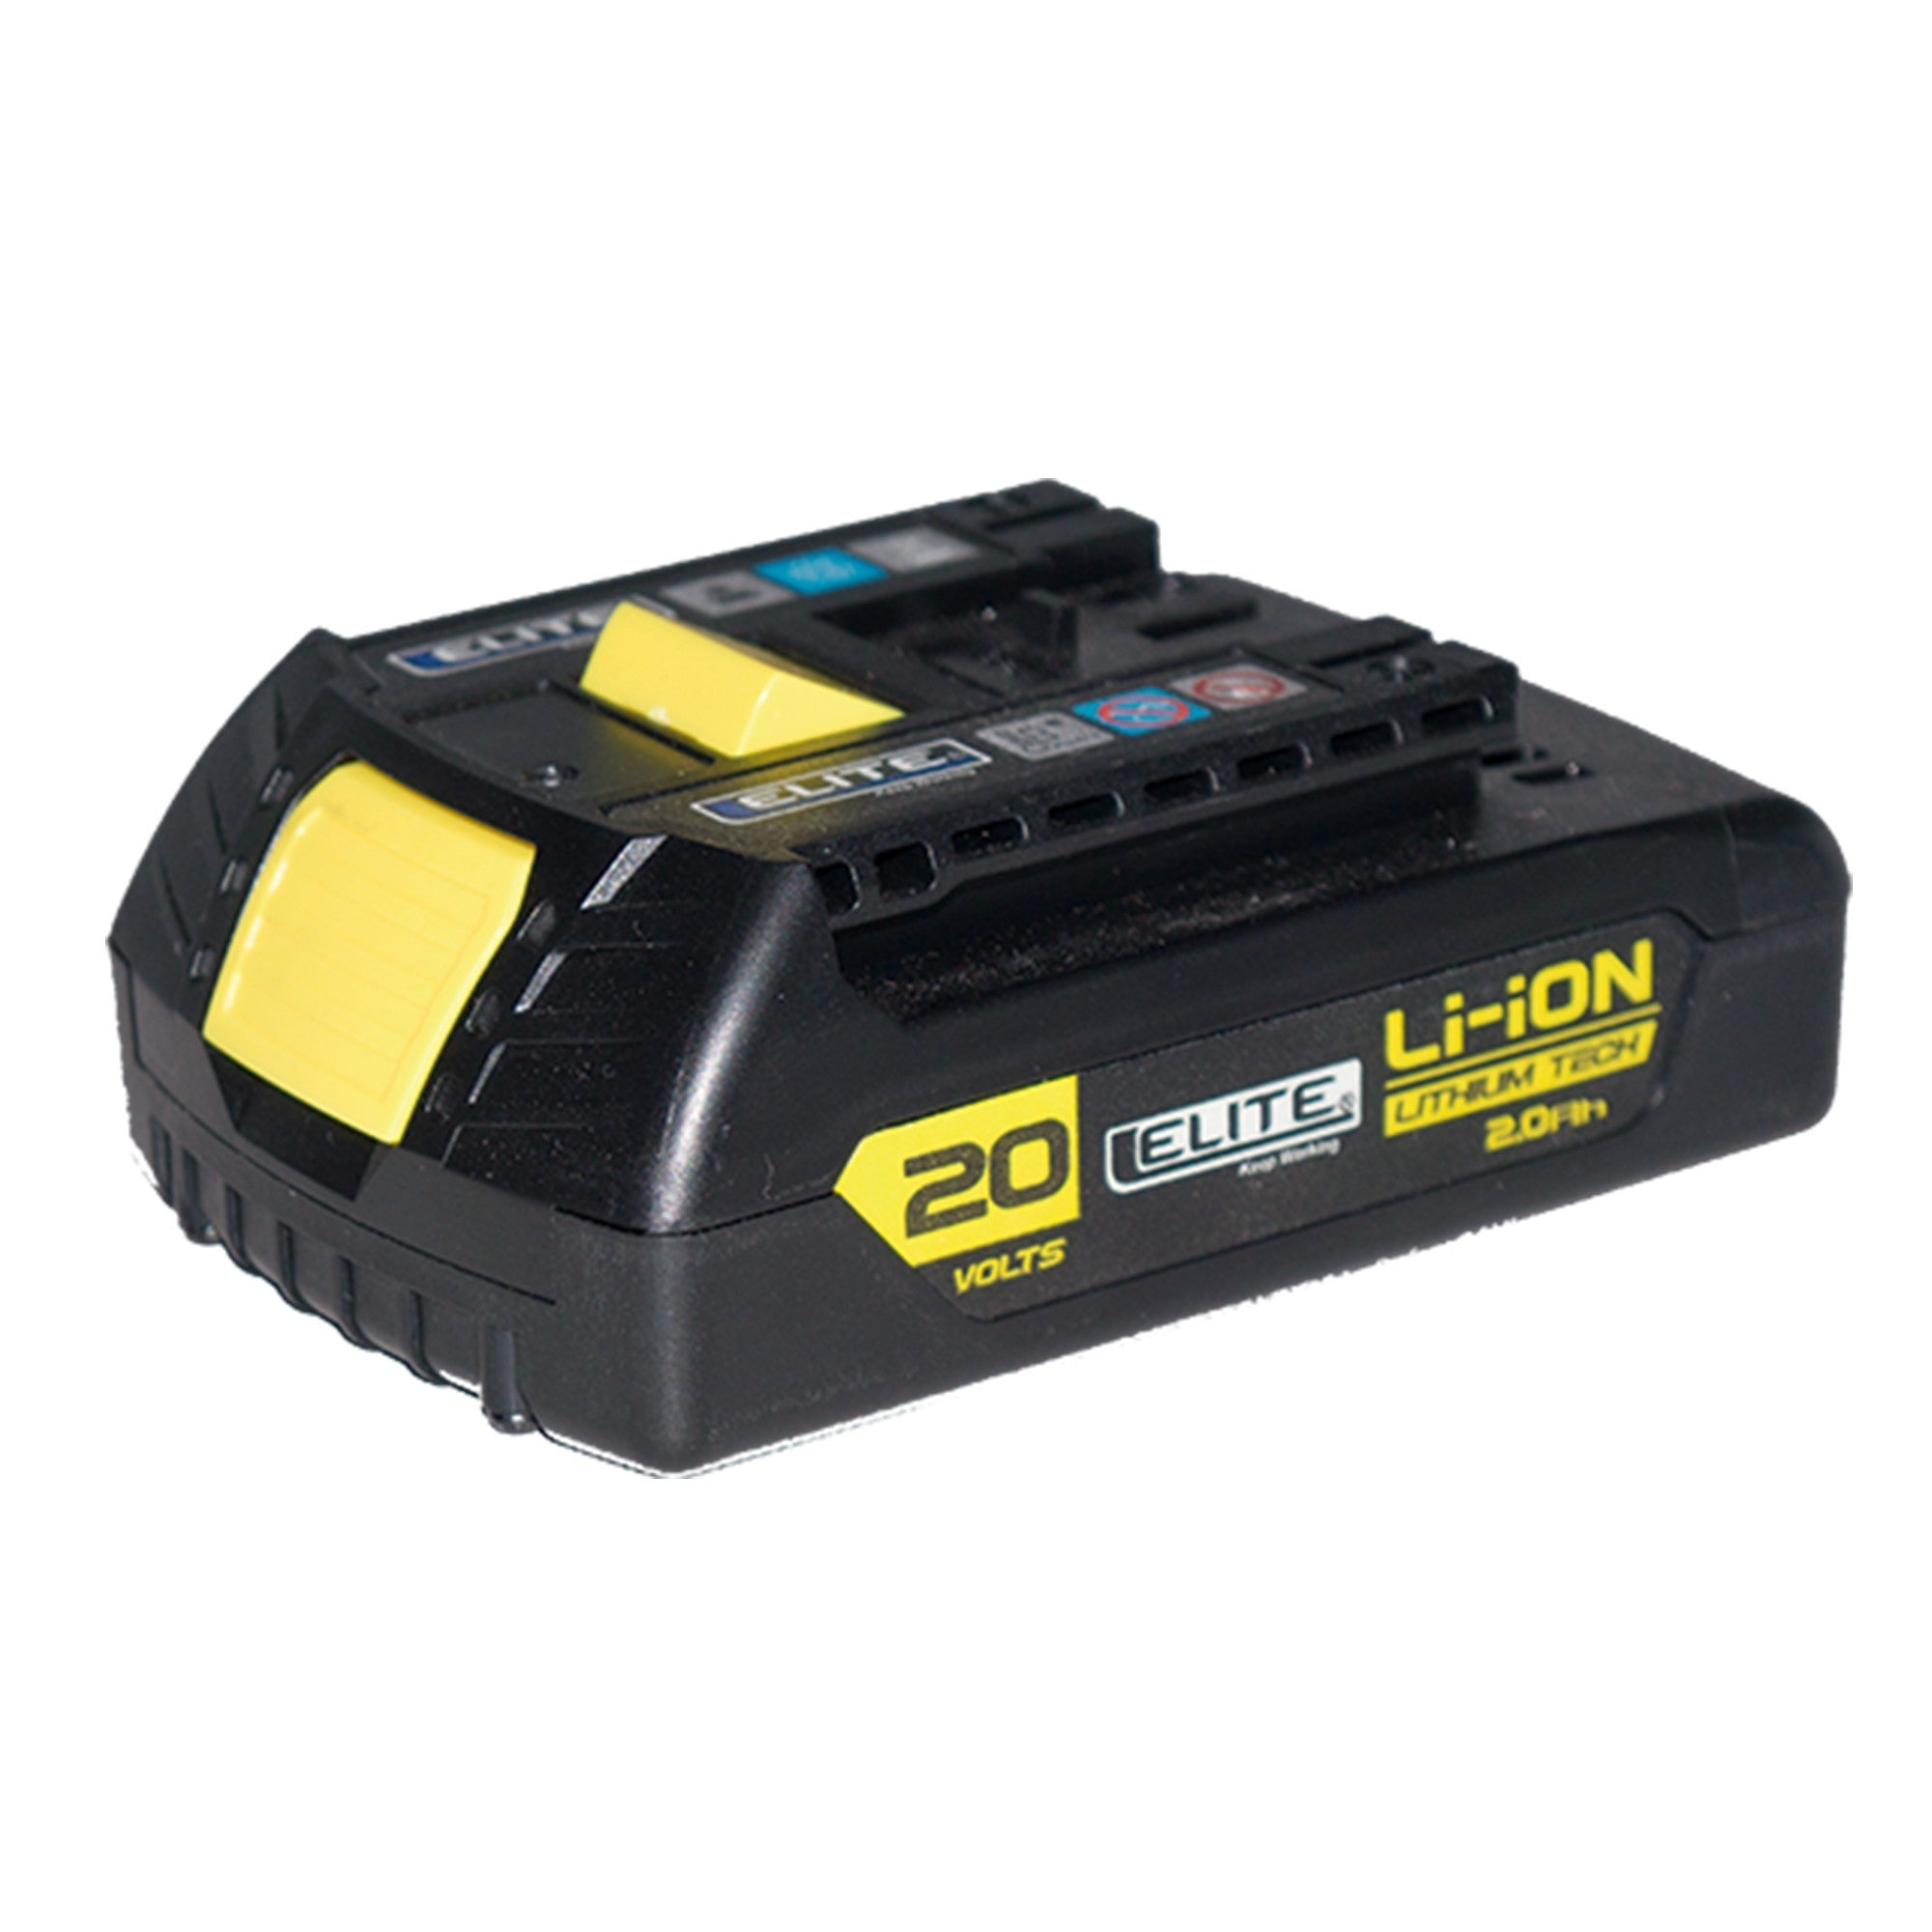 BATERÍA DE ION DE LITIO ELITE CB020 DE 20V.